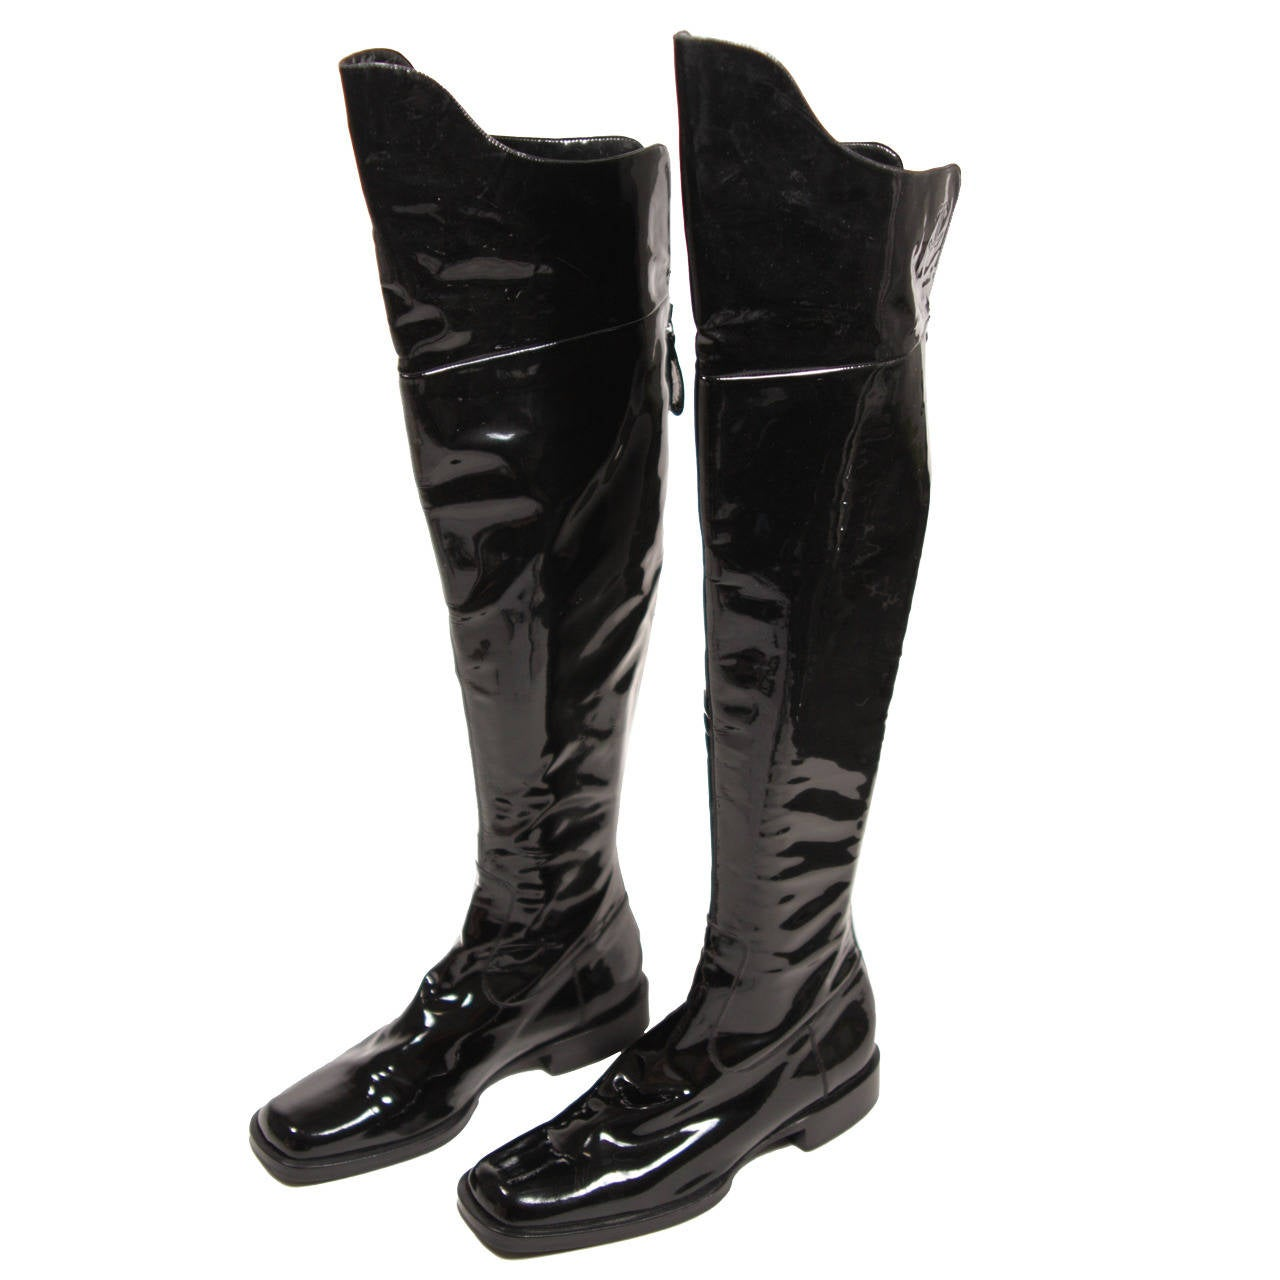 chanel knee high boots. chanel black patent leather boots size 7.5 nwb 1 knee high